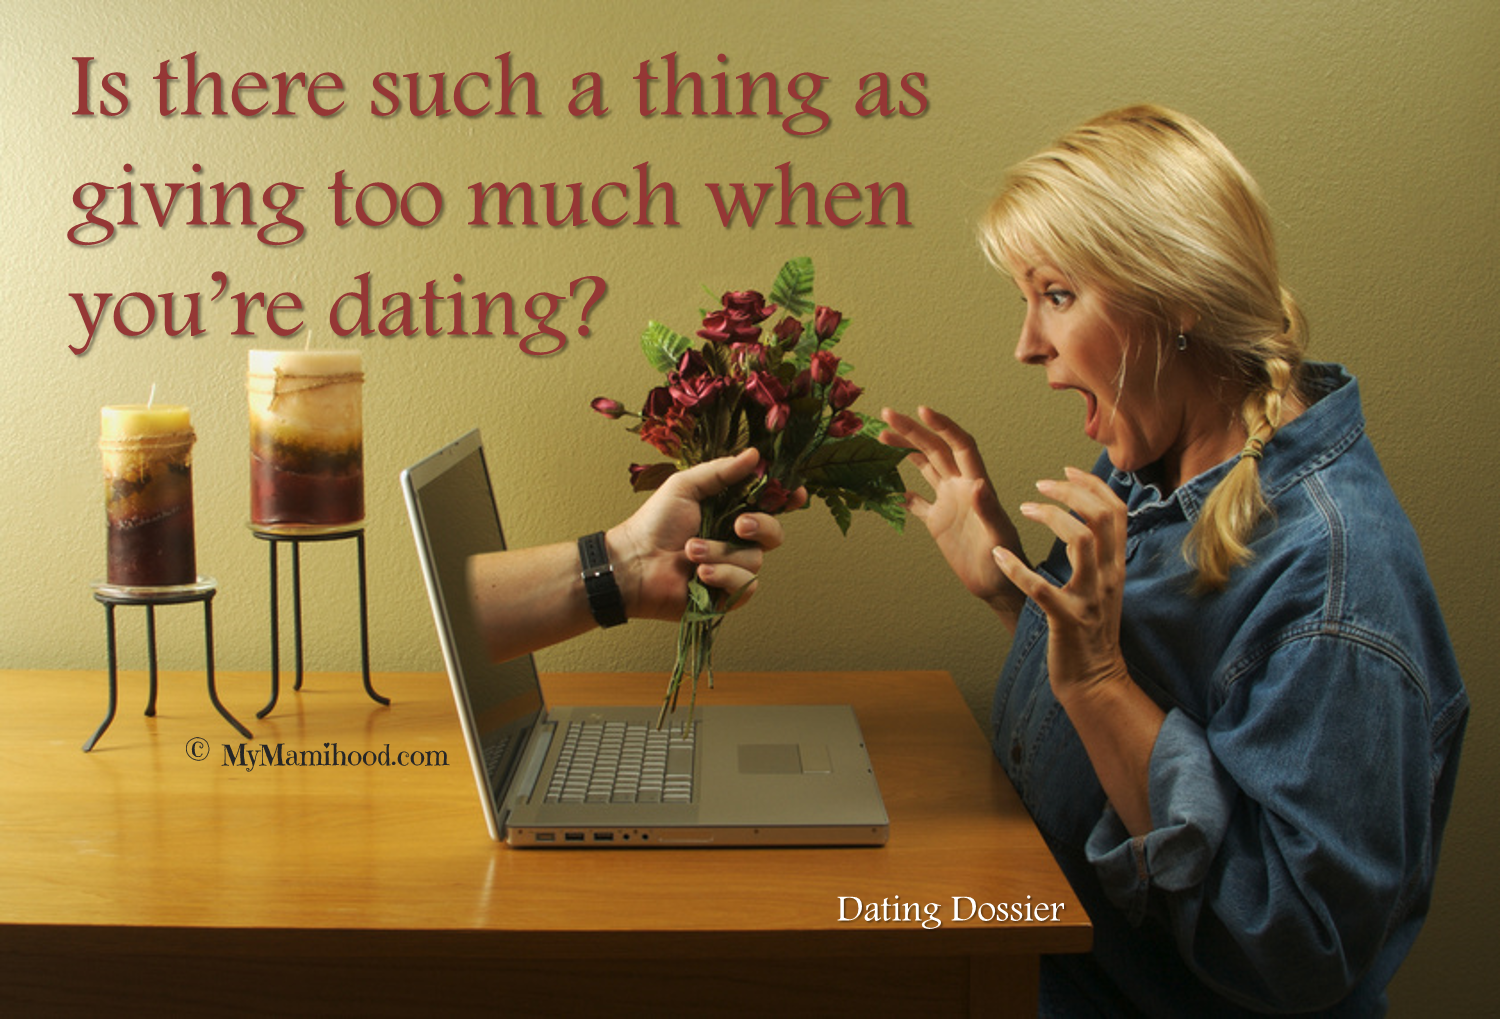 Dating Dossier - Giving